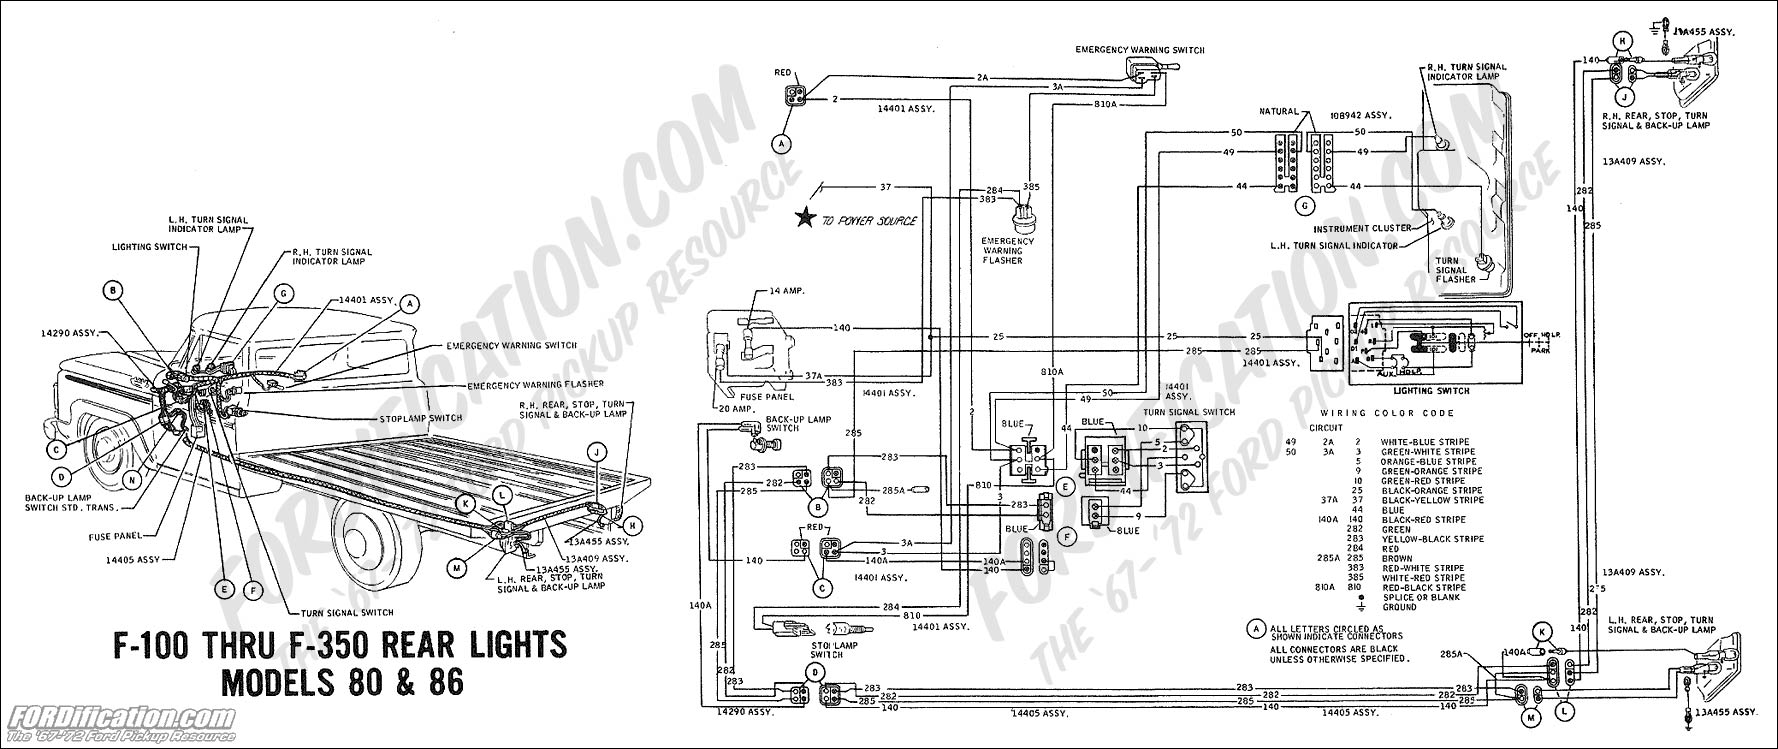 hight resolution of ford f800 wiring schematic wiring diagram source 1992 ford f800 1990 ford f800 wiring